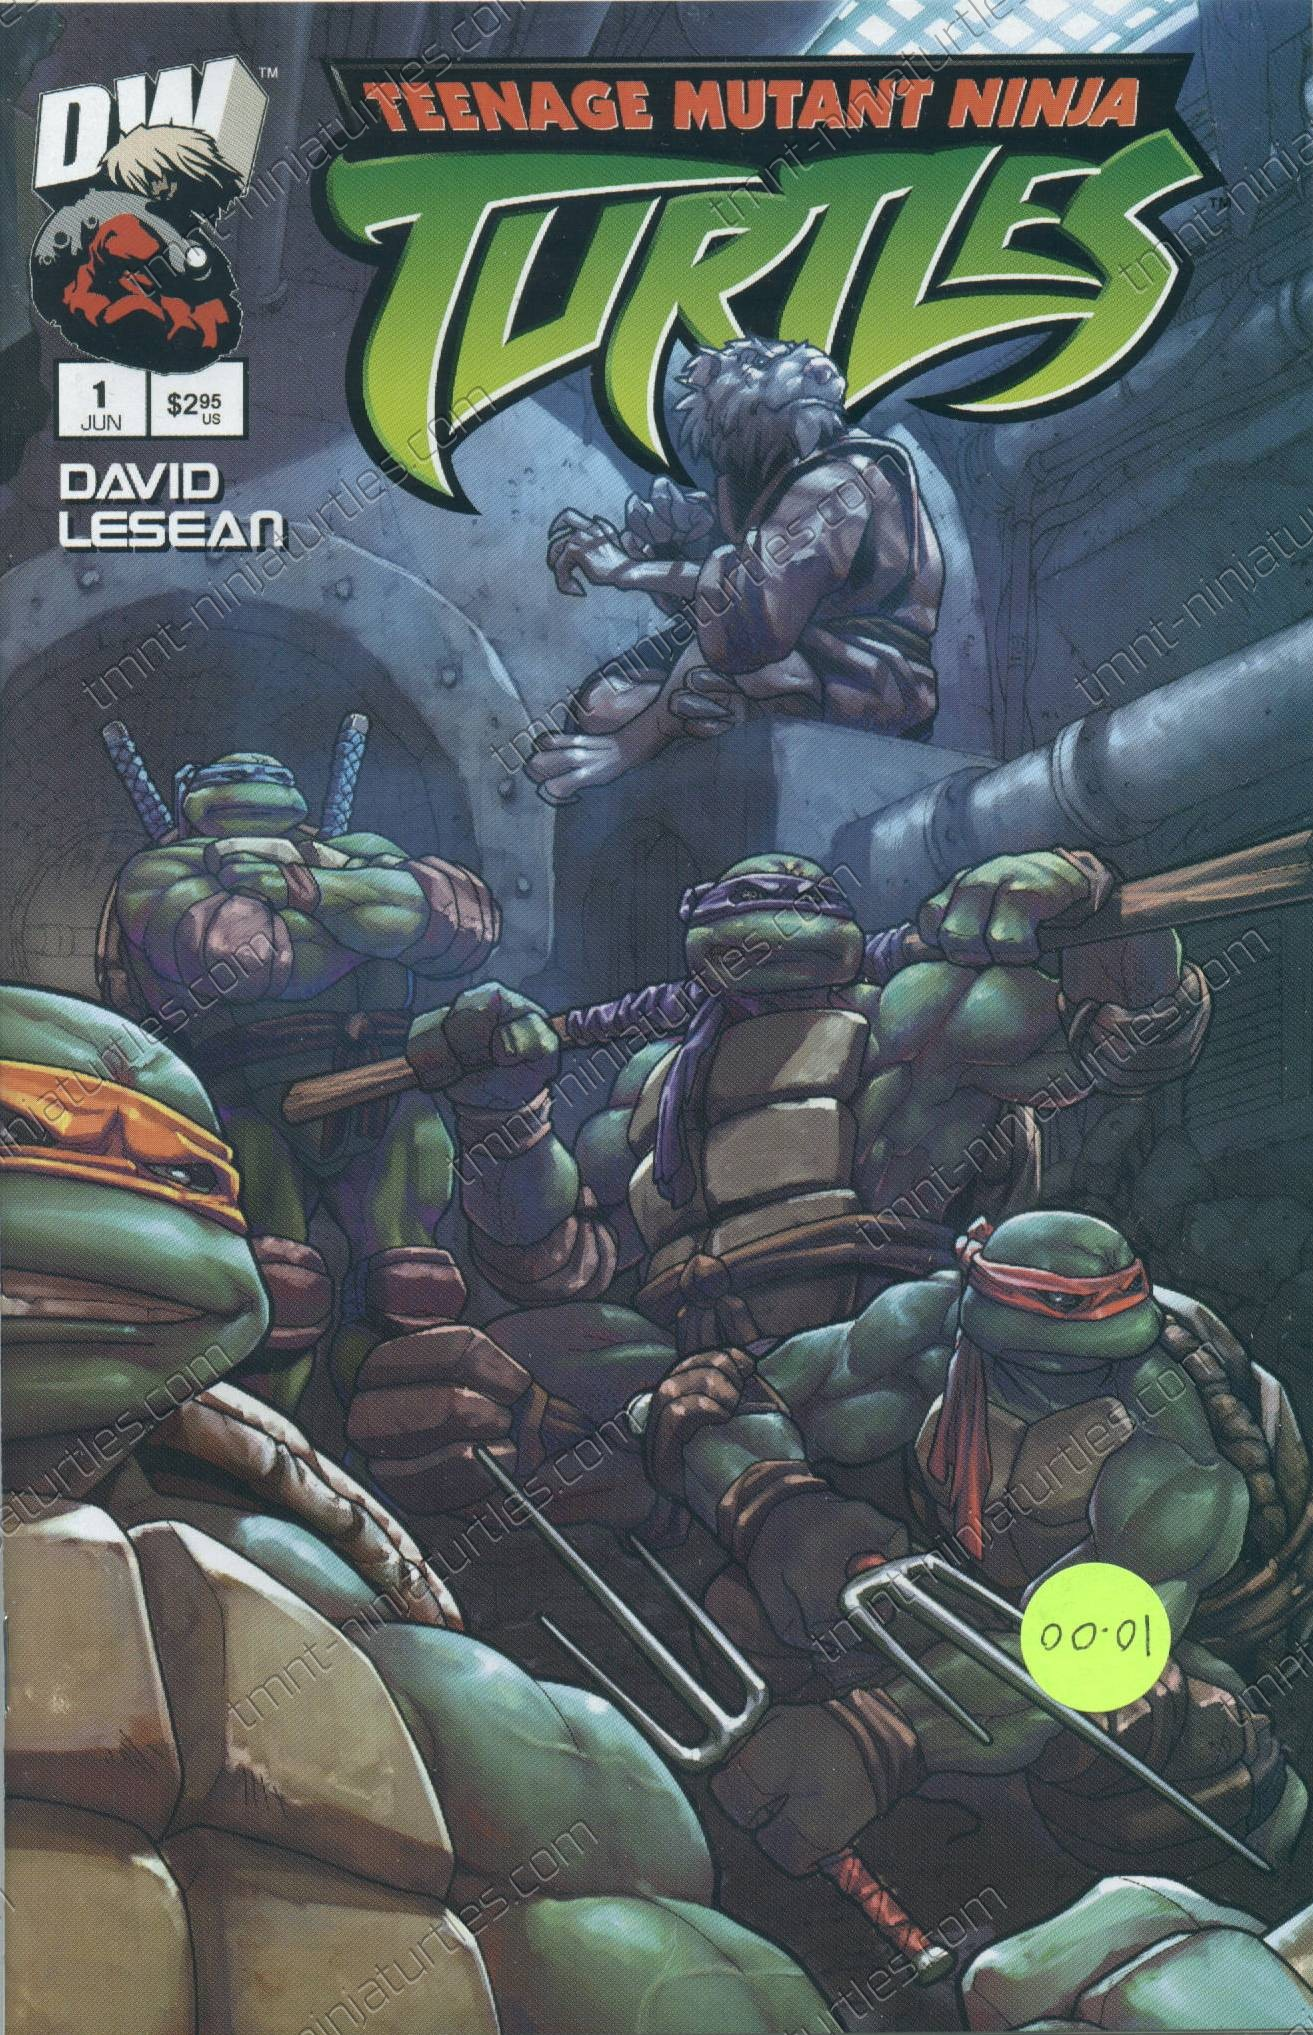 TMNT-Vol-I-01_1st-print_Ltd-Ed-June-2003